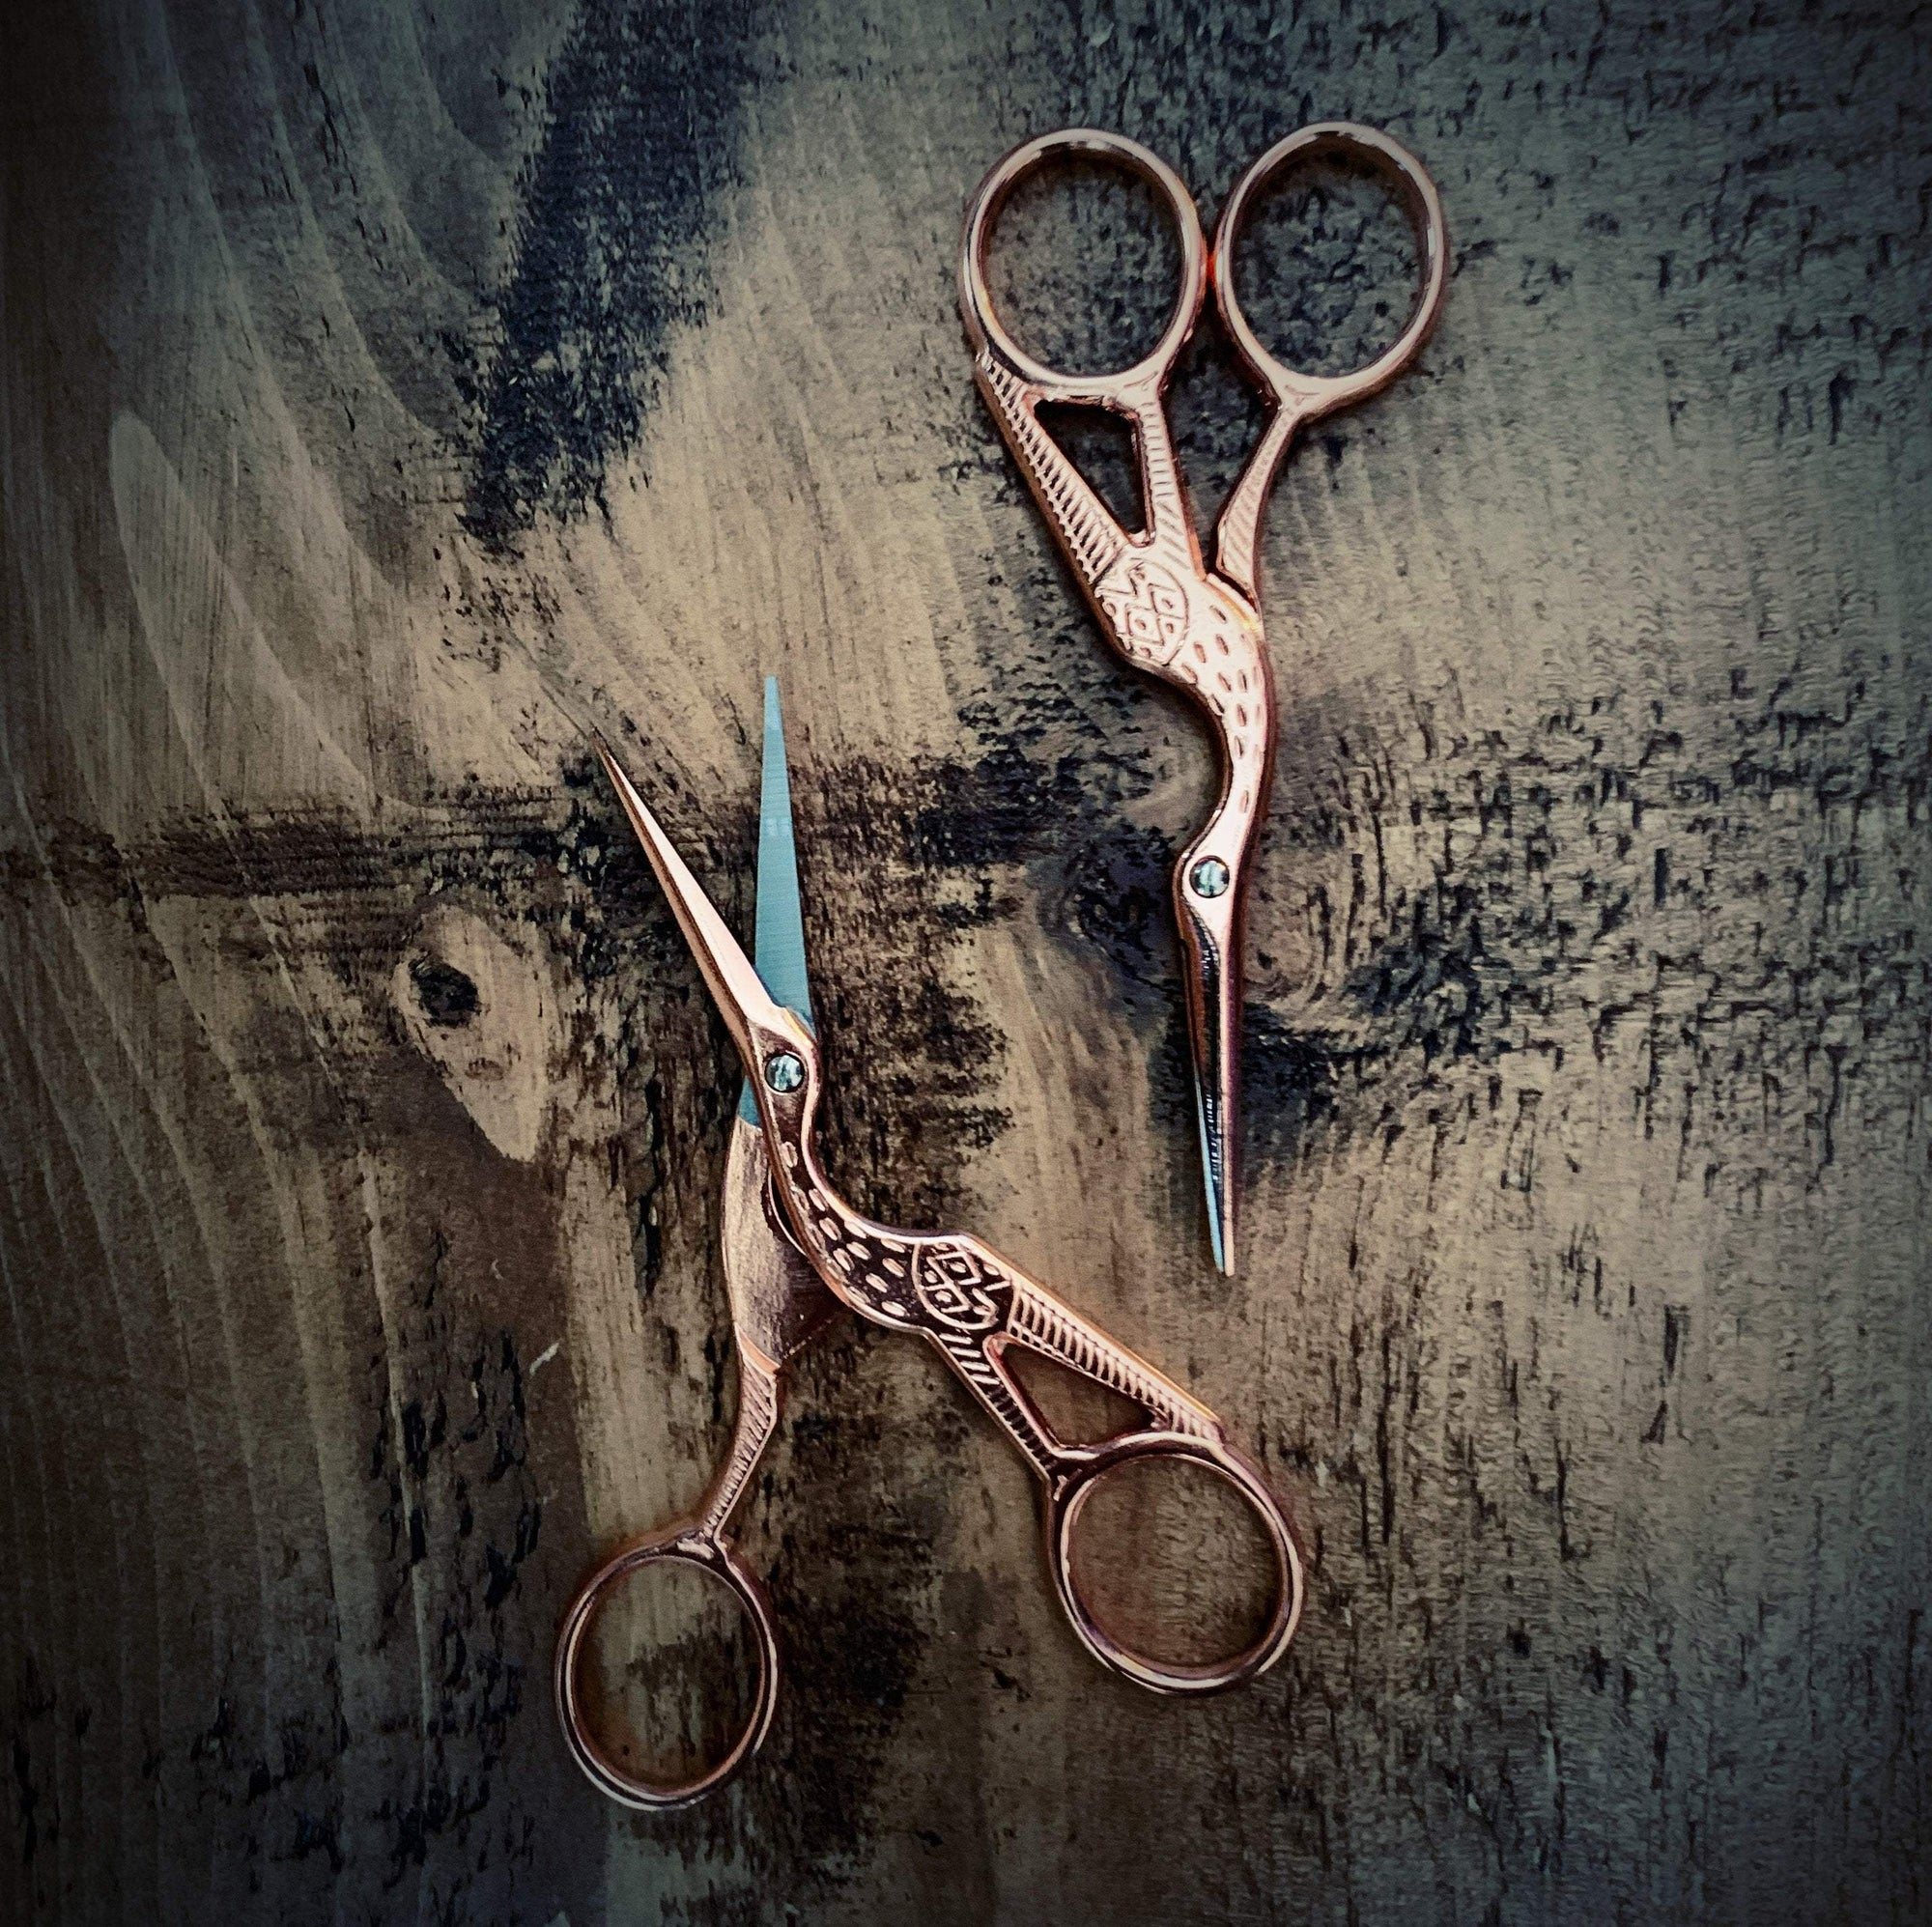 Rose Gold Stork Scissors tribeyarns Scissors & Snips